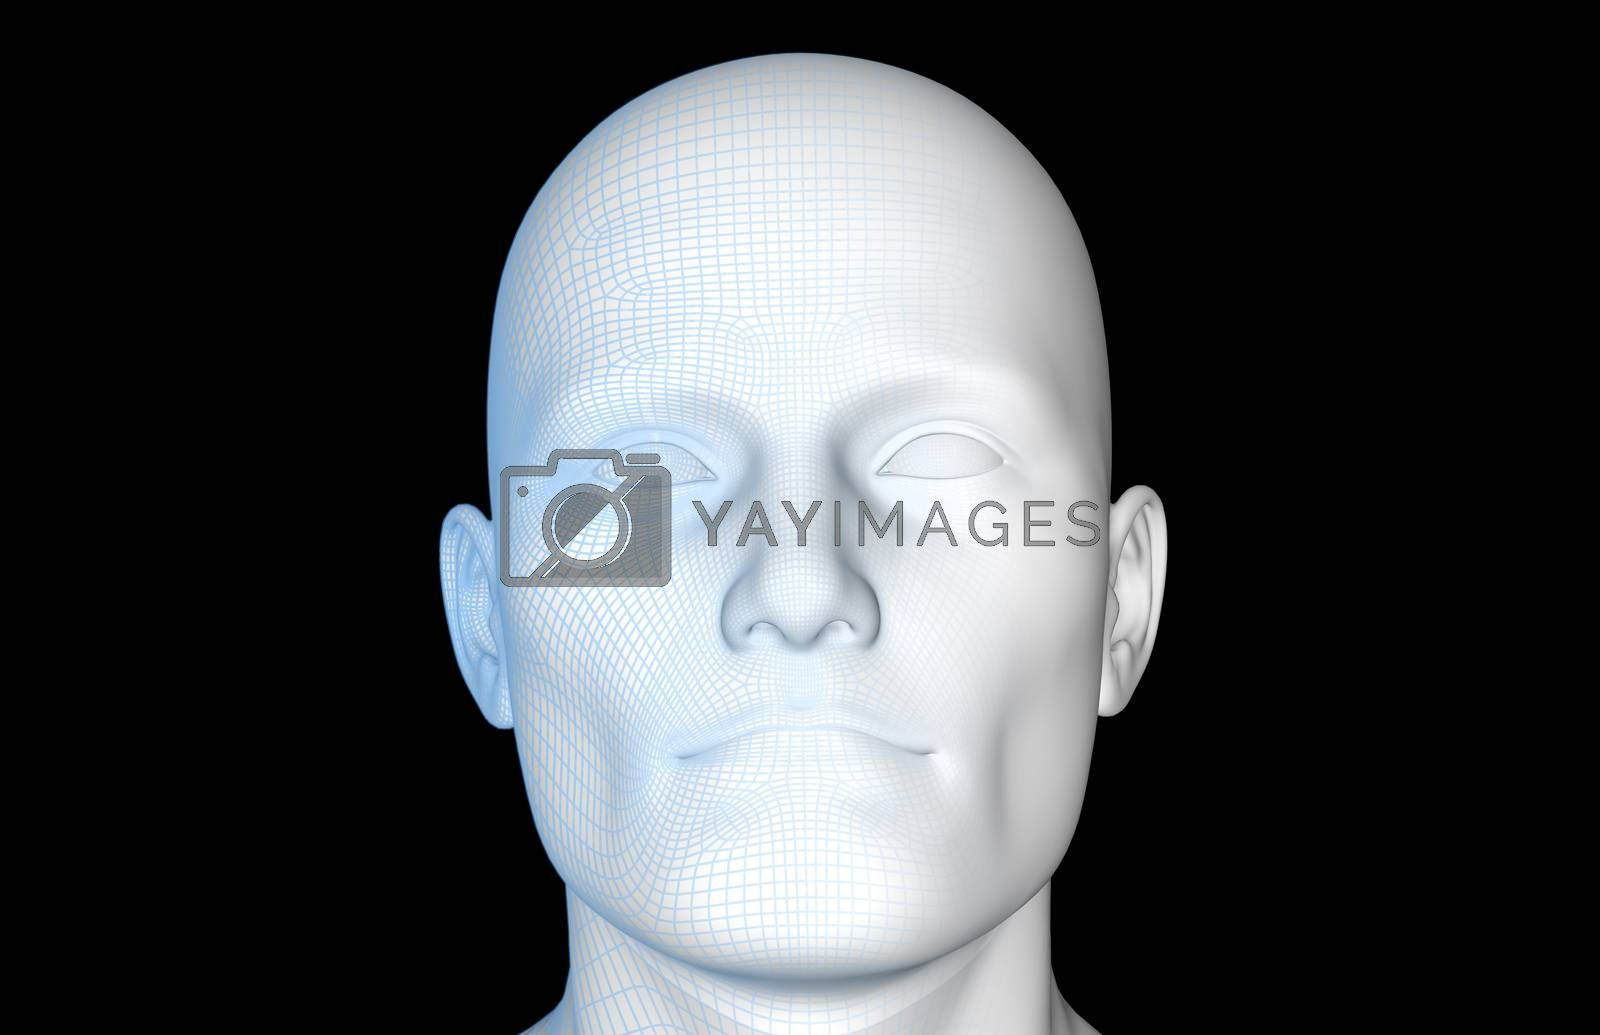 Facial Recognition Technology and Mapping of Face